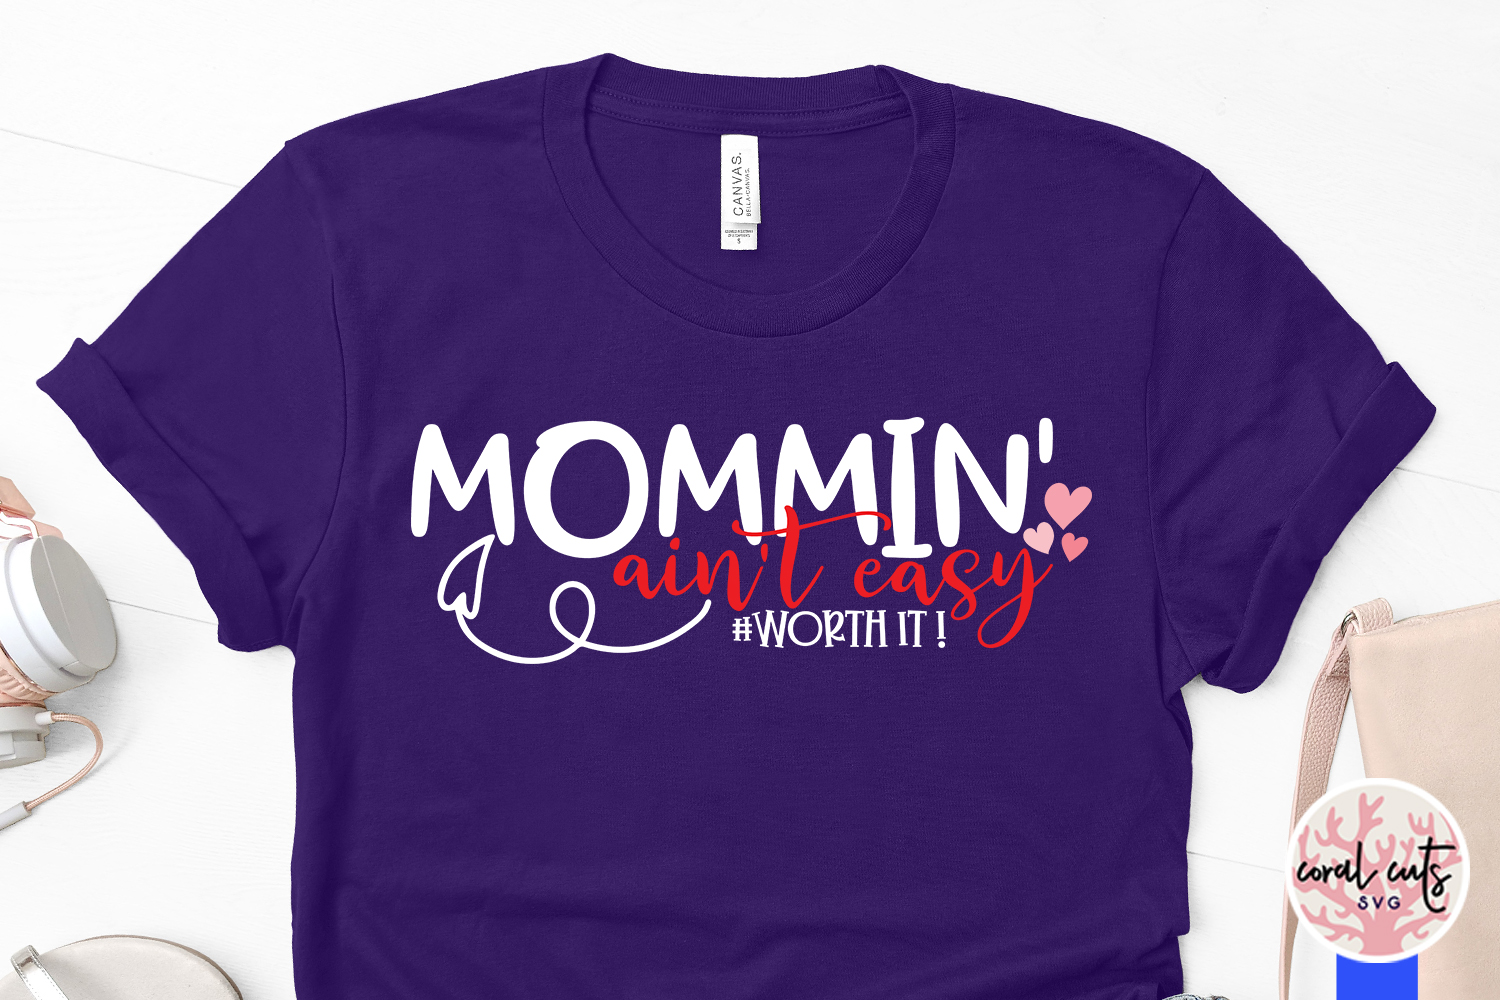 Mommin ain't easy worth it - Mother SVG EPS DXF PNG Cutting example image 3